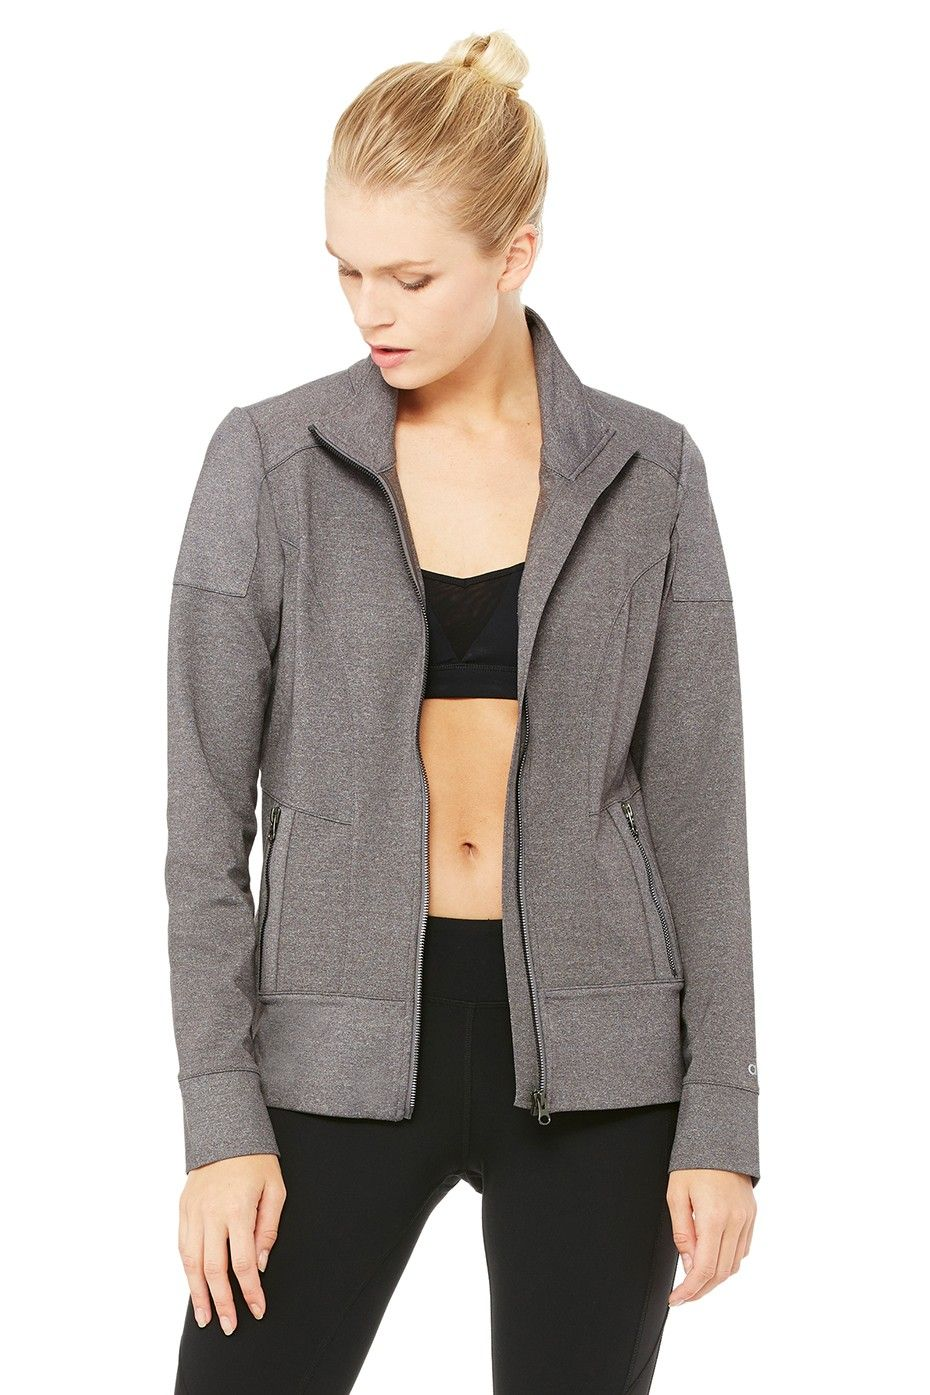 cc91bc585c Moto Jacket - Stormy Heather/Stormy Heather | Women's Coverups at ALO Yoga